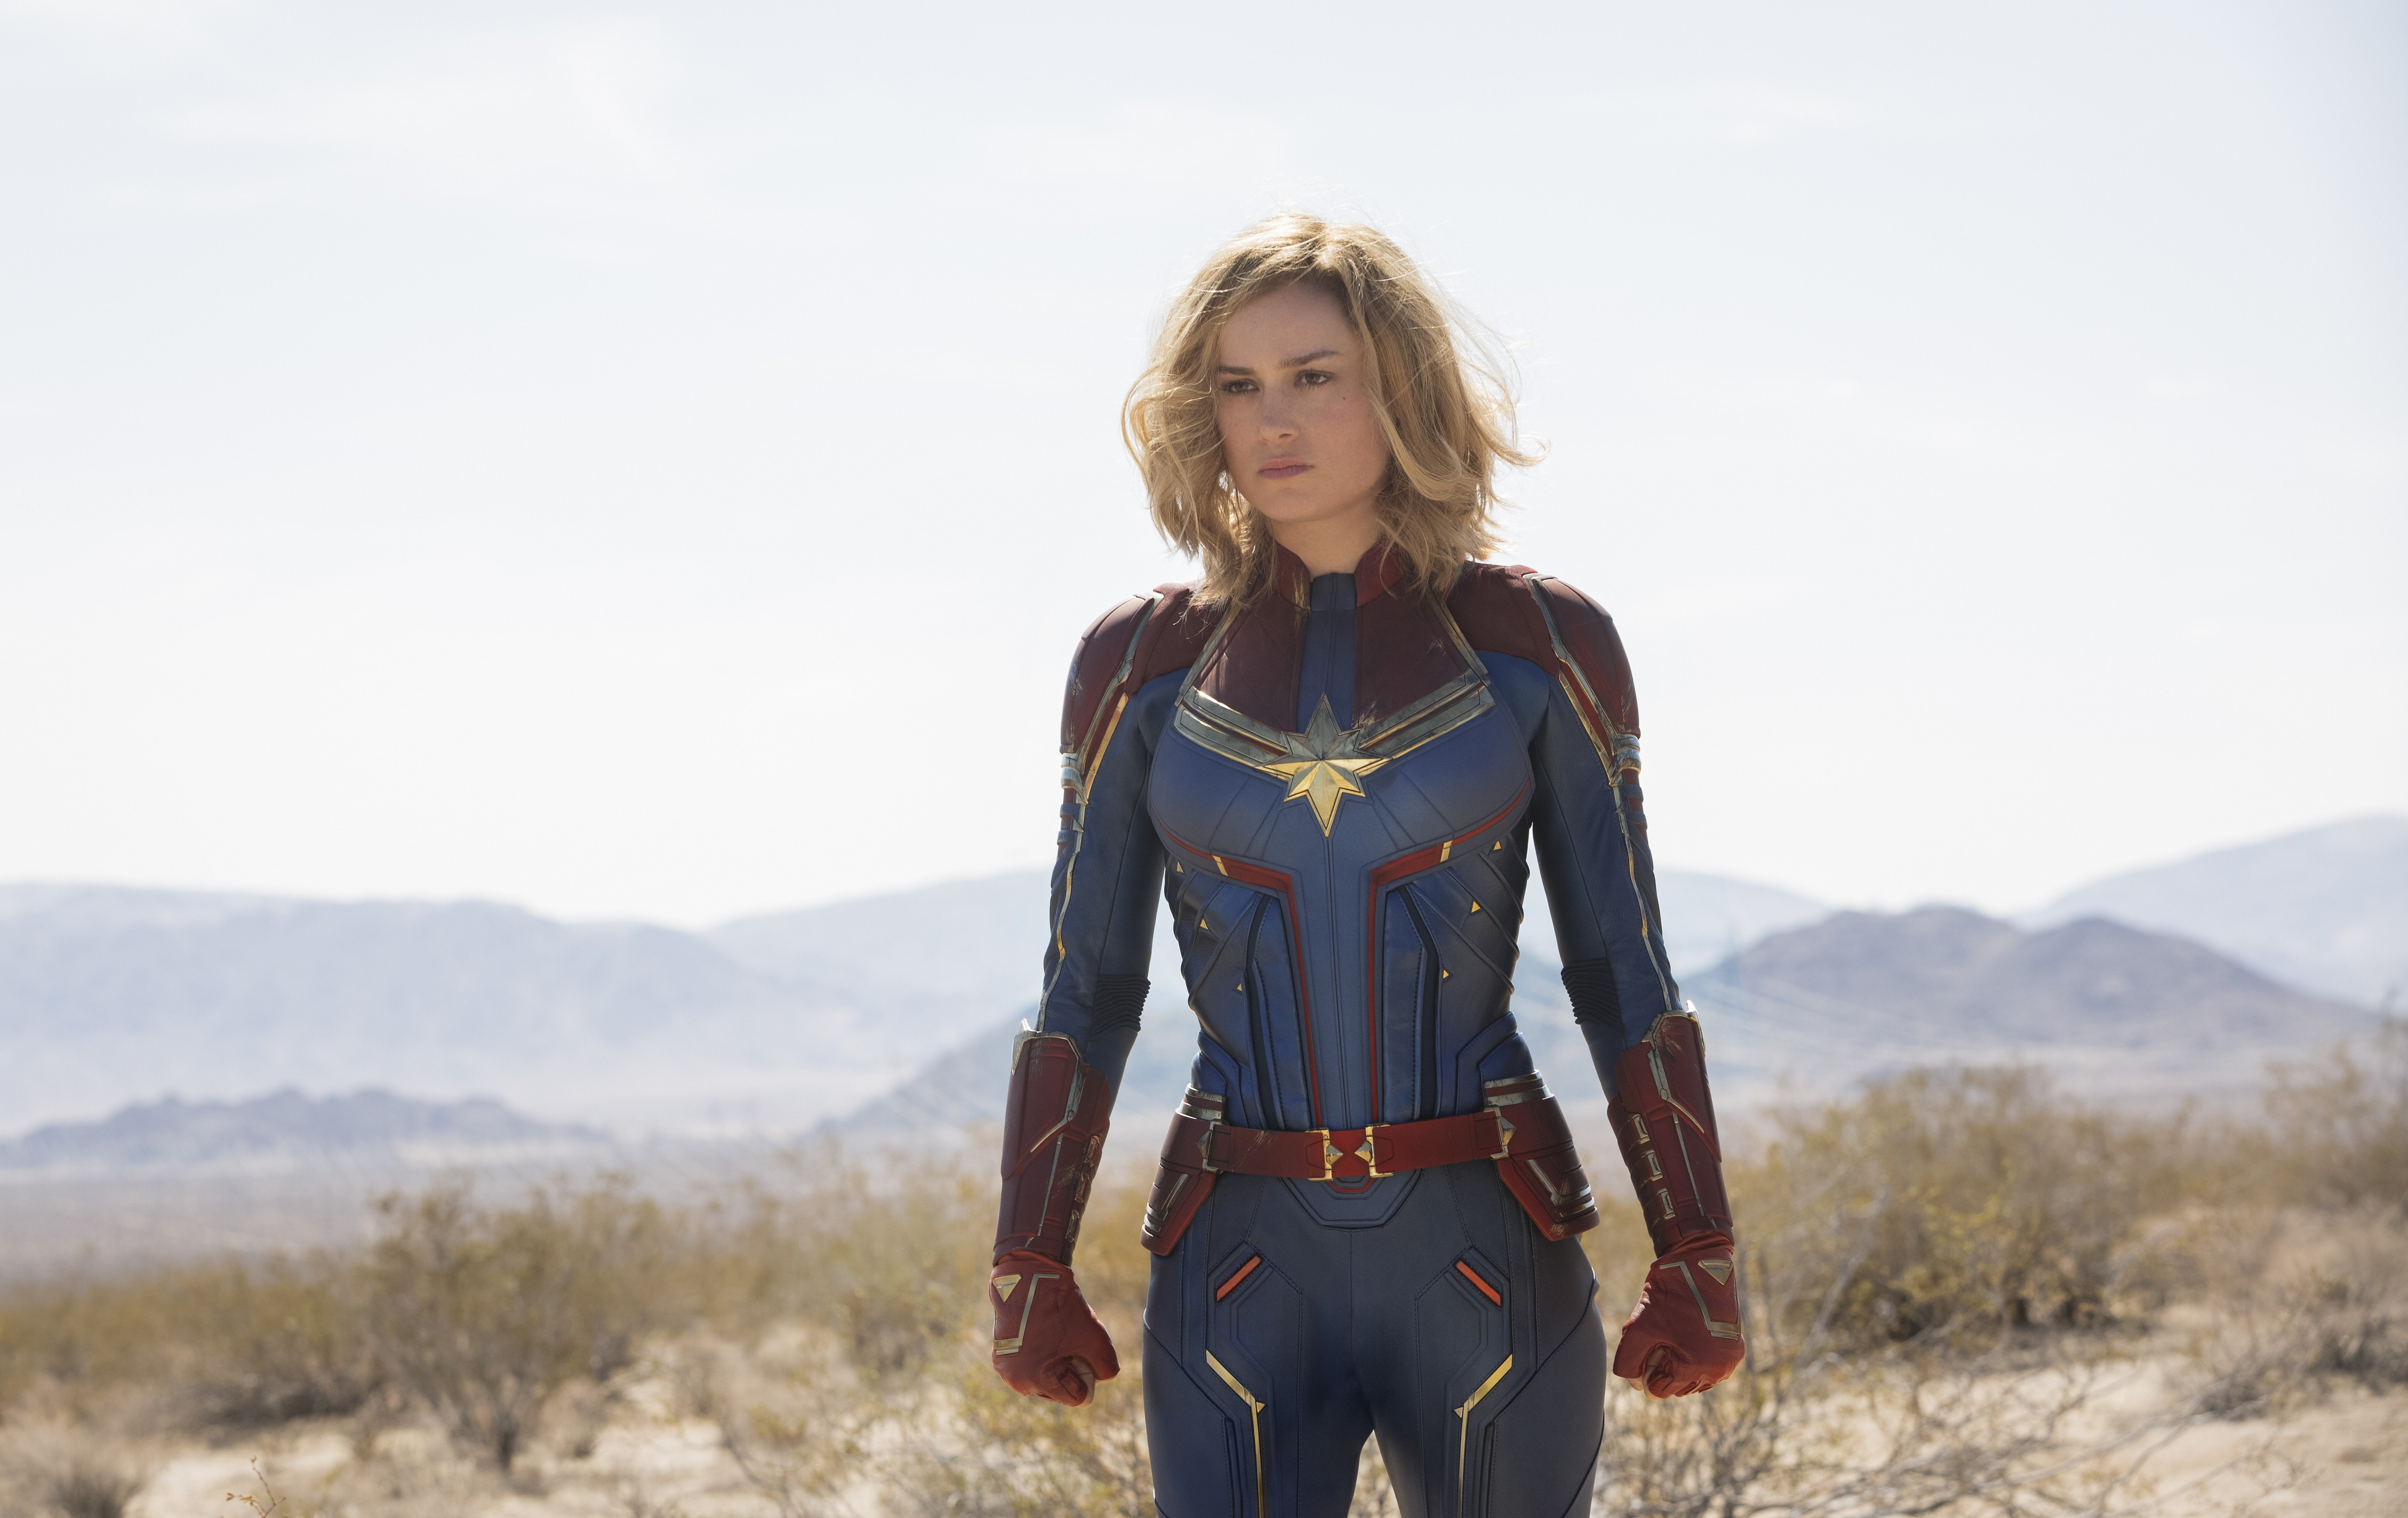 dd5fa98b3c69 5 reasons why  Captain Marvel  will beat  Wonder Woman  at the box office